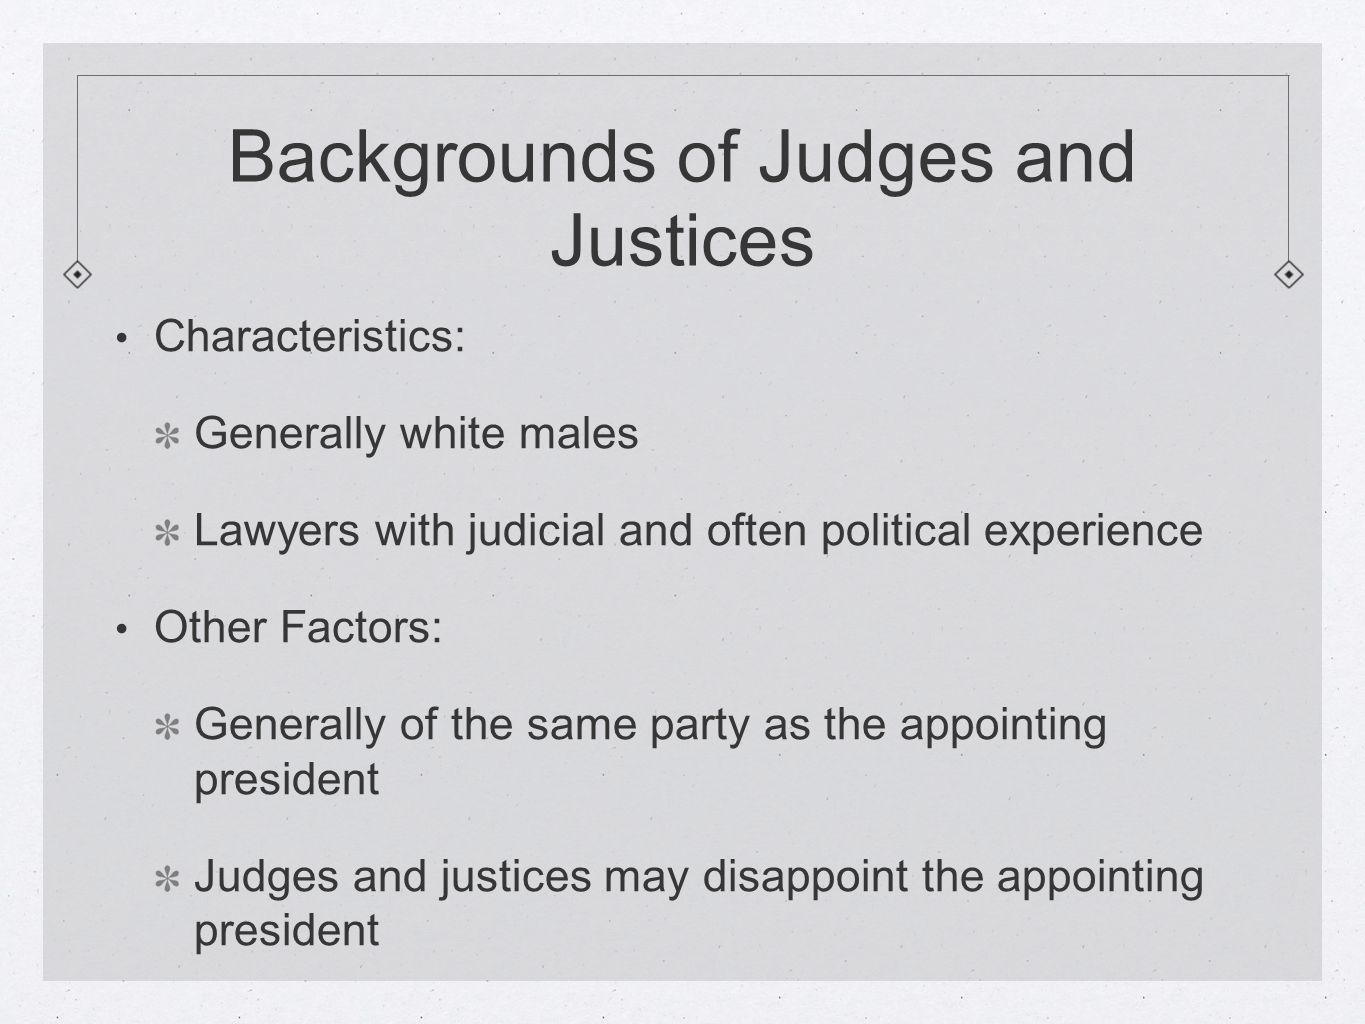 Backgrounds of Judges and Justices